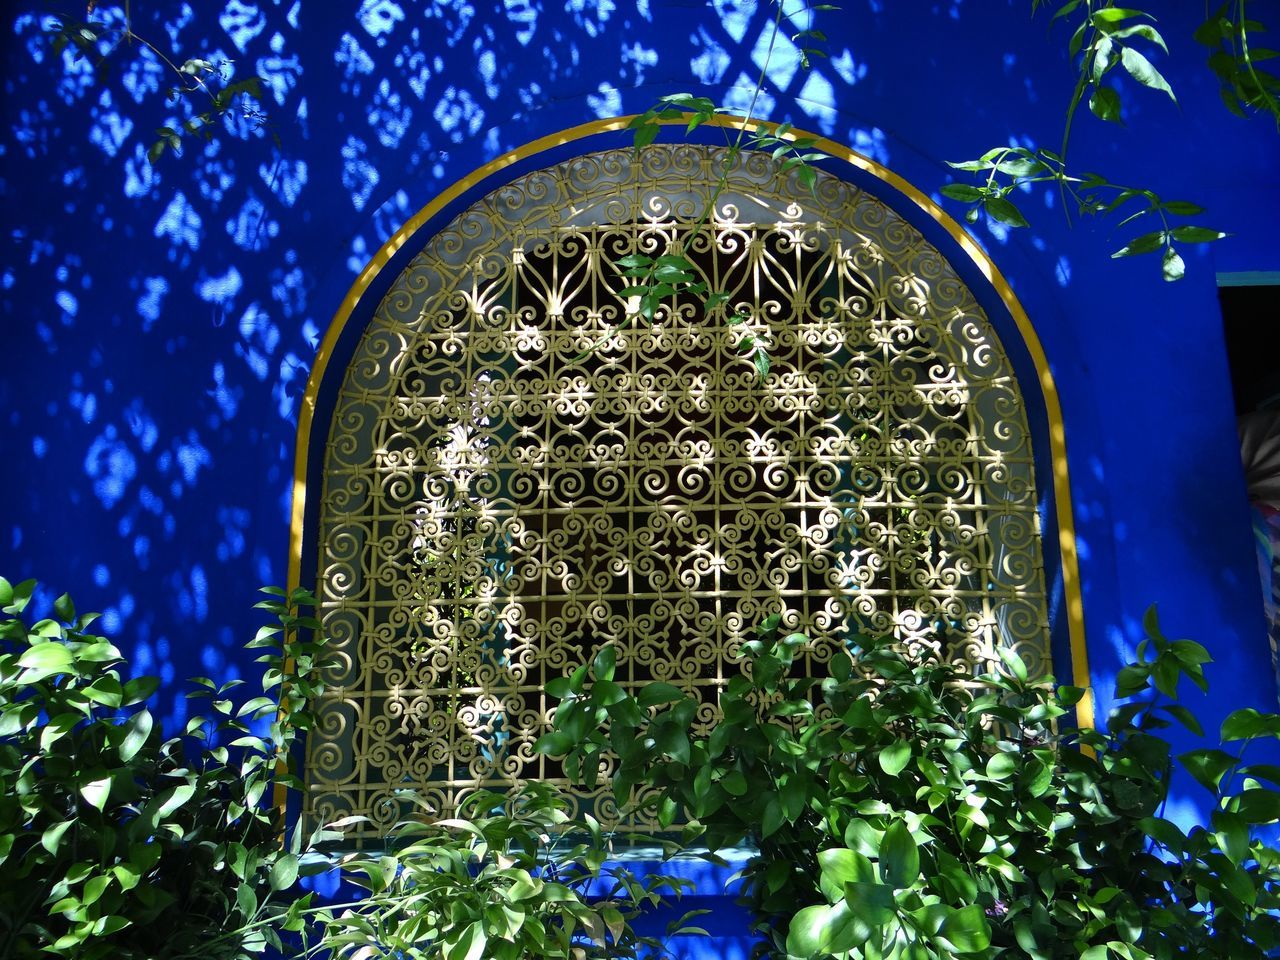 Low Angle View Of Designed Metal Grate On Window By Plants At Majorelle Garden